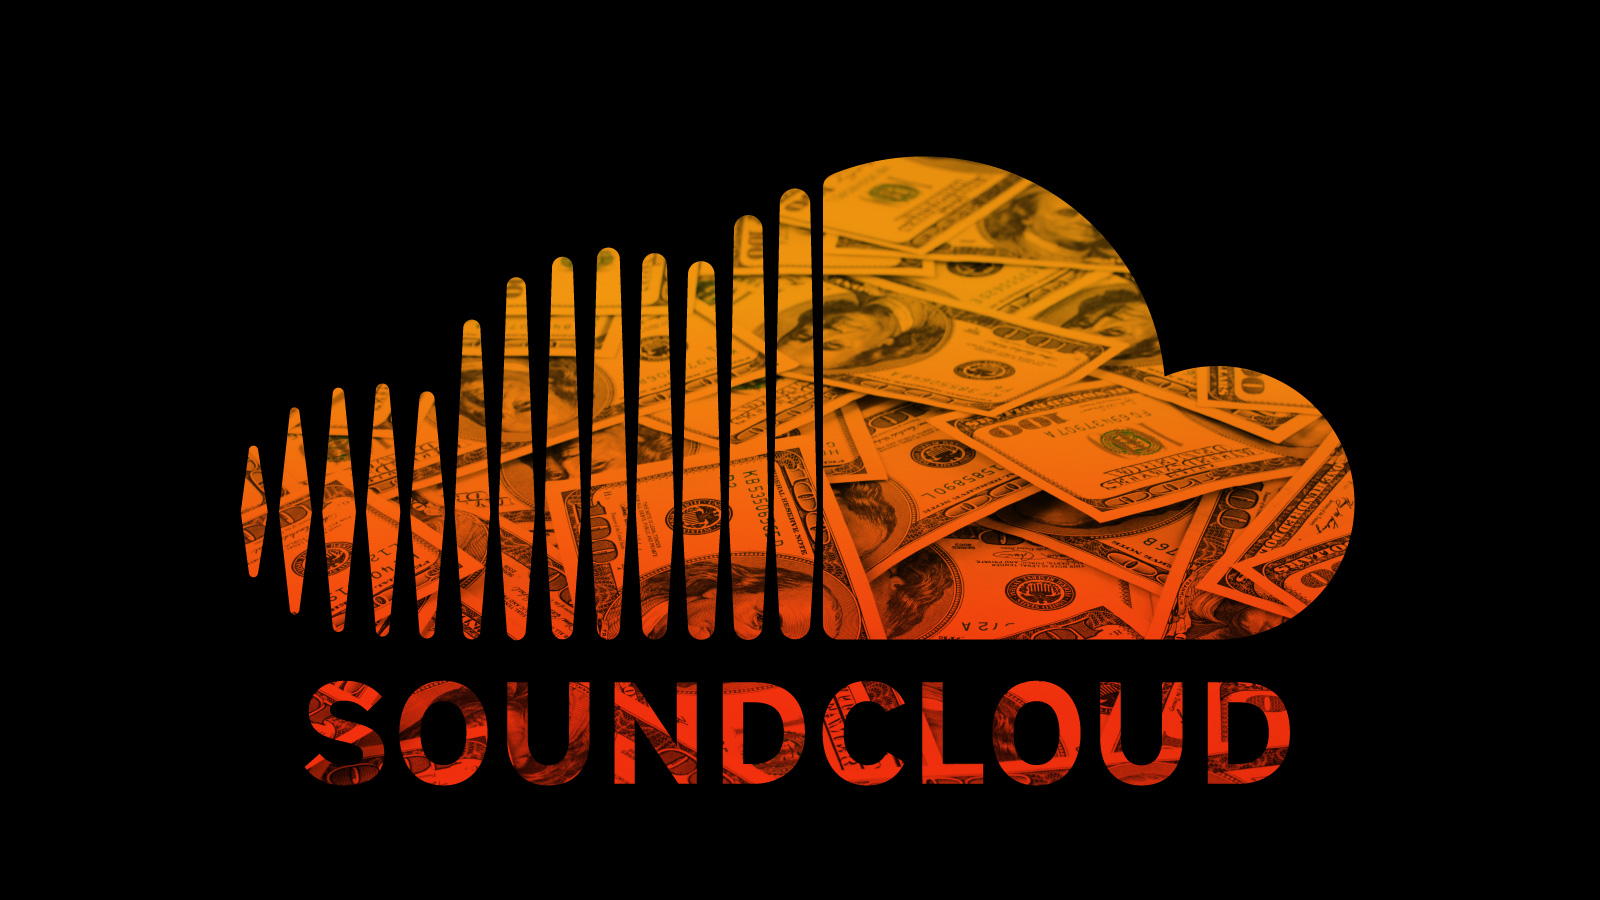 Exciting news and the future of SoundCloud